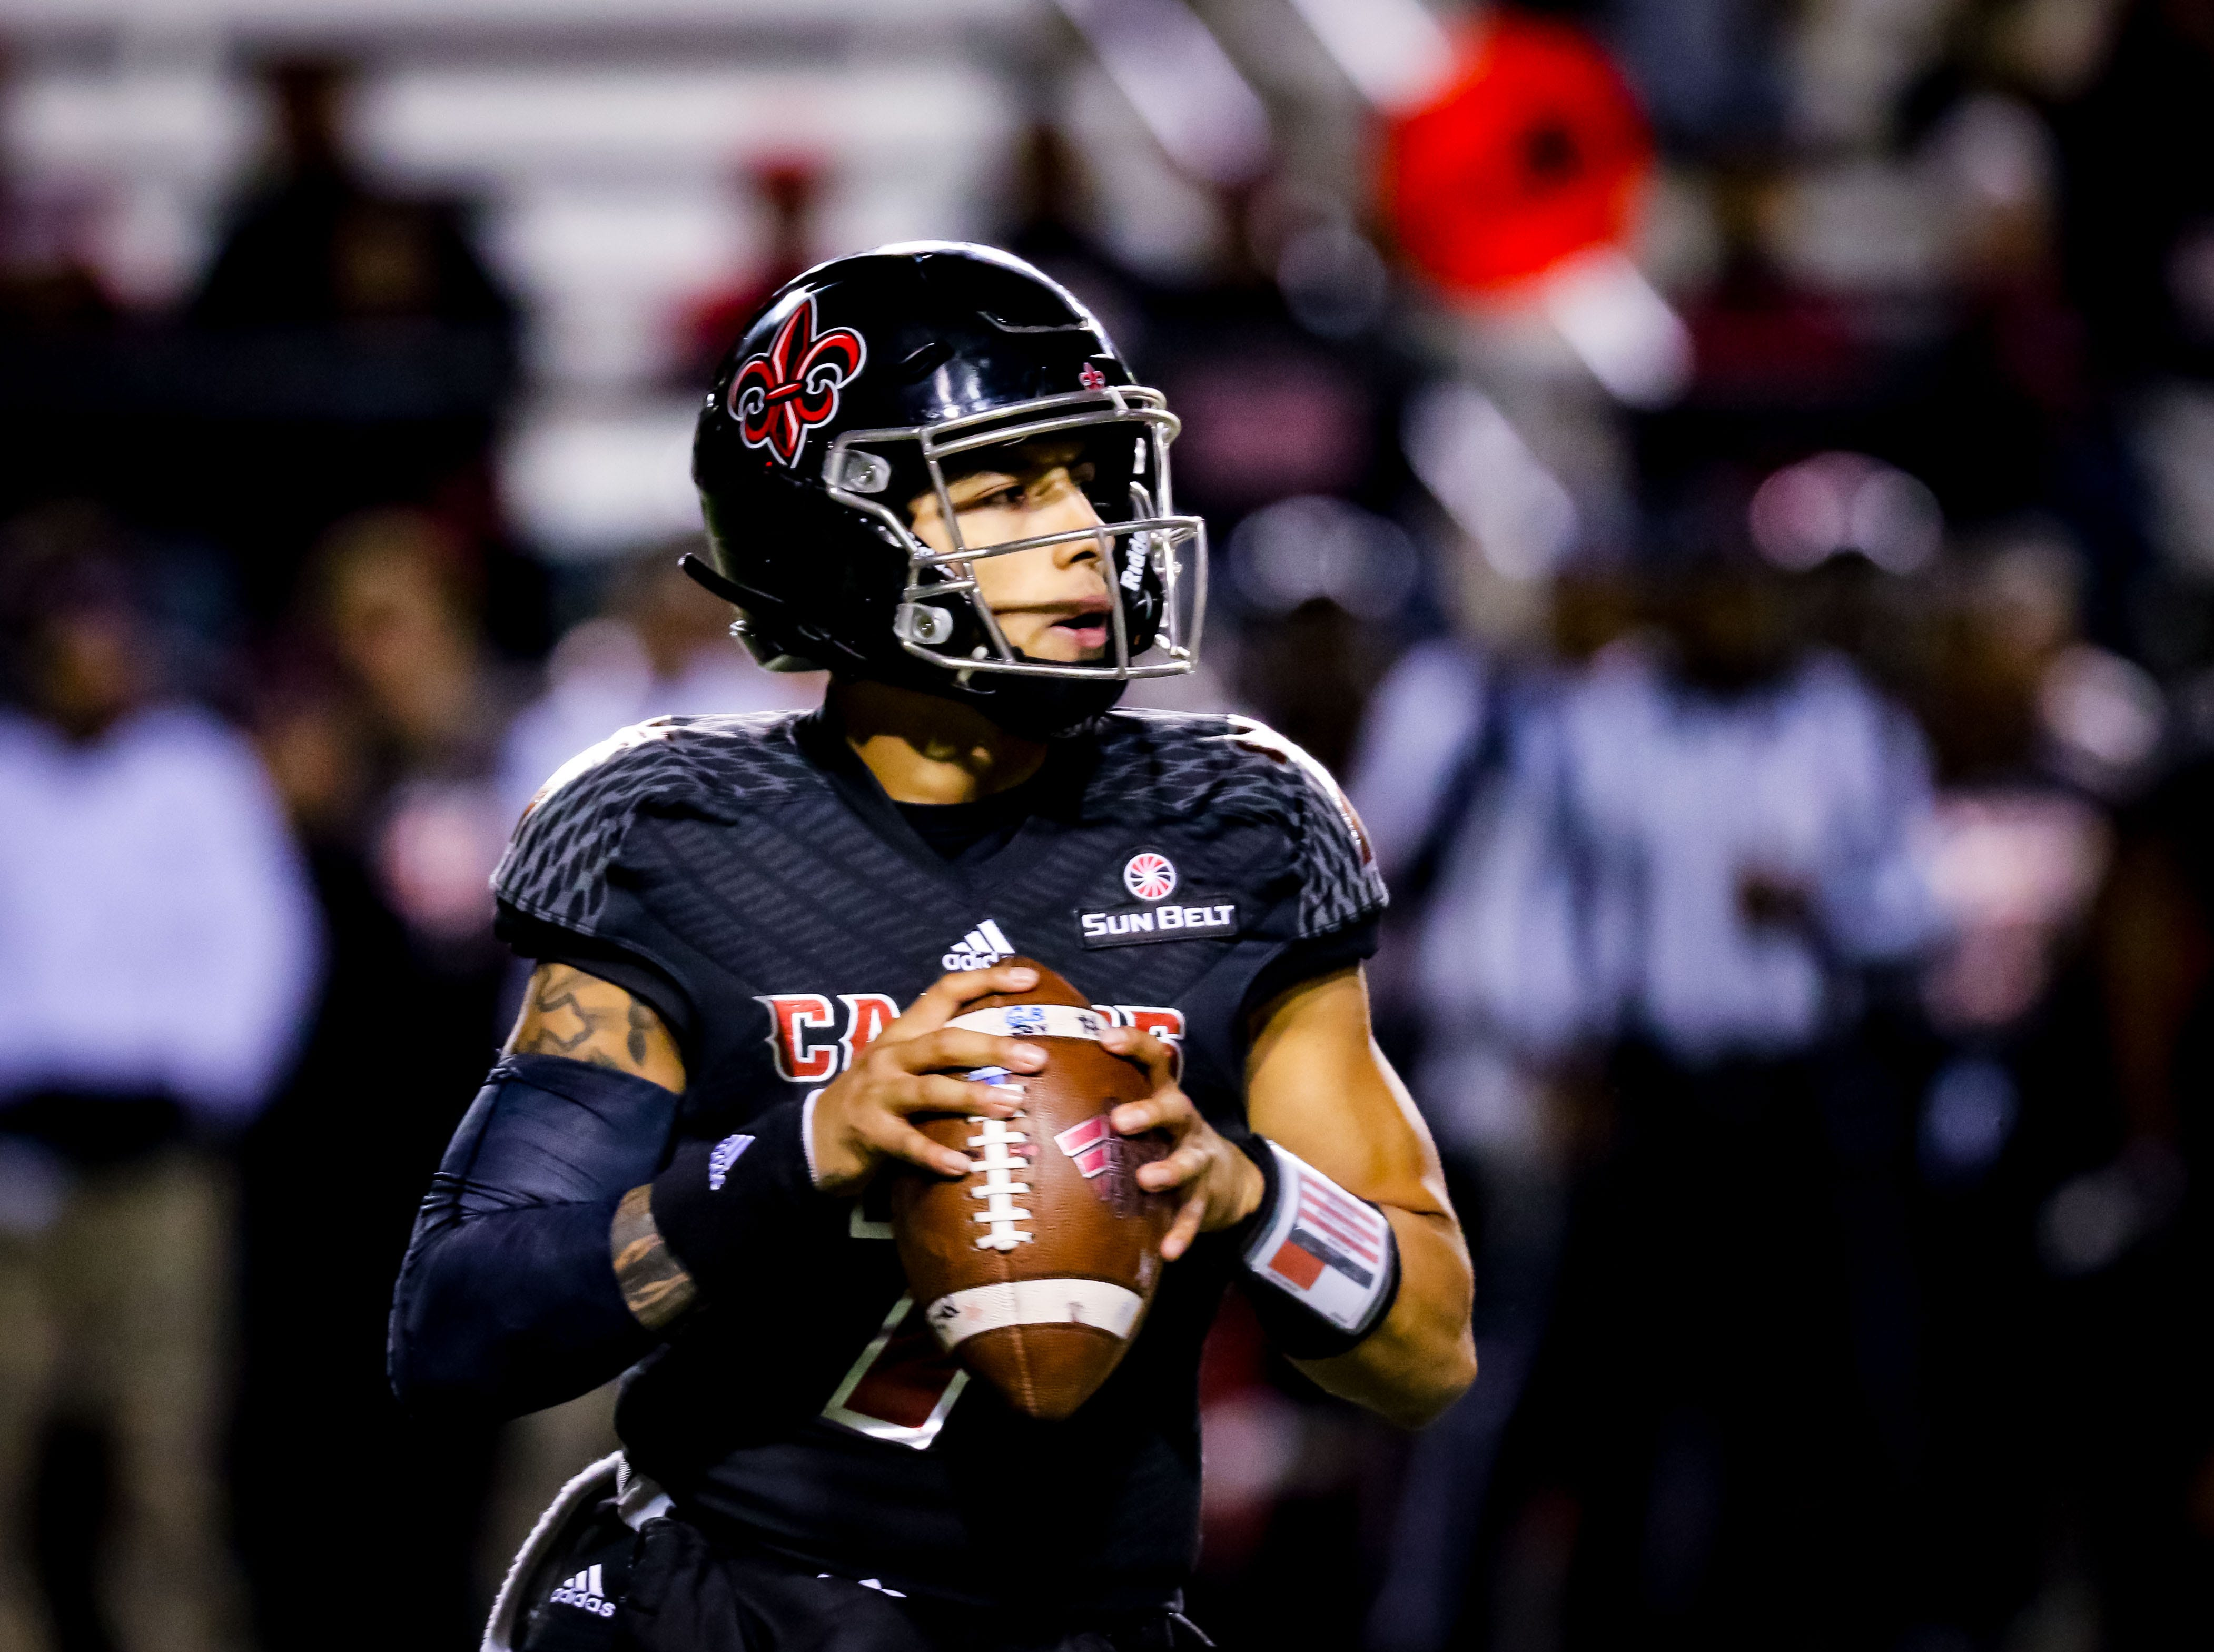 UL can control its fate with two games remaining in Napier's first year